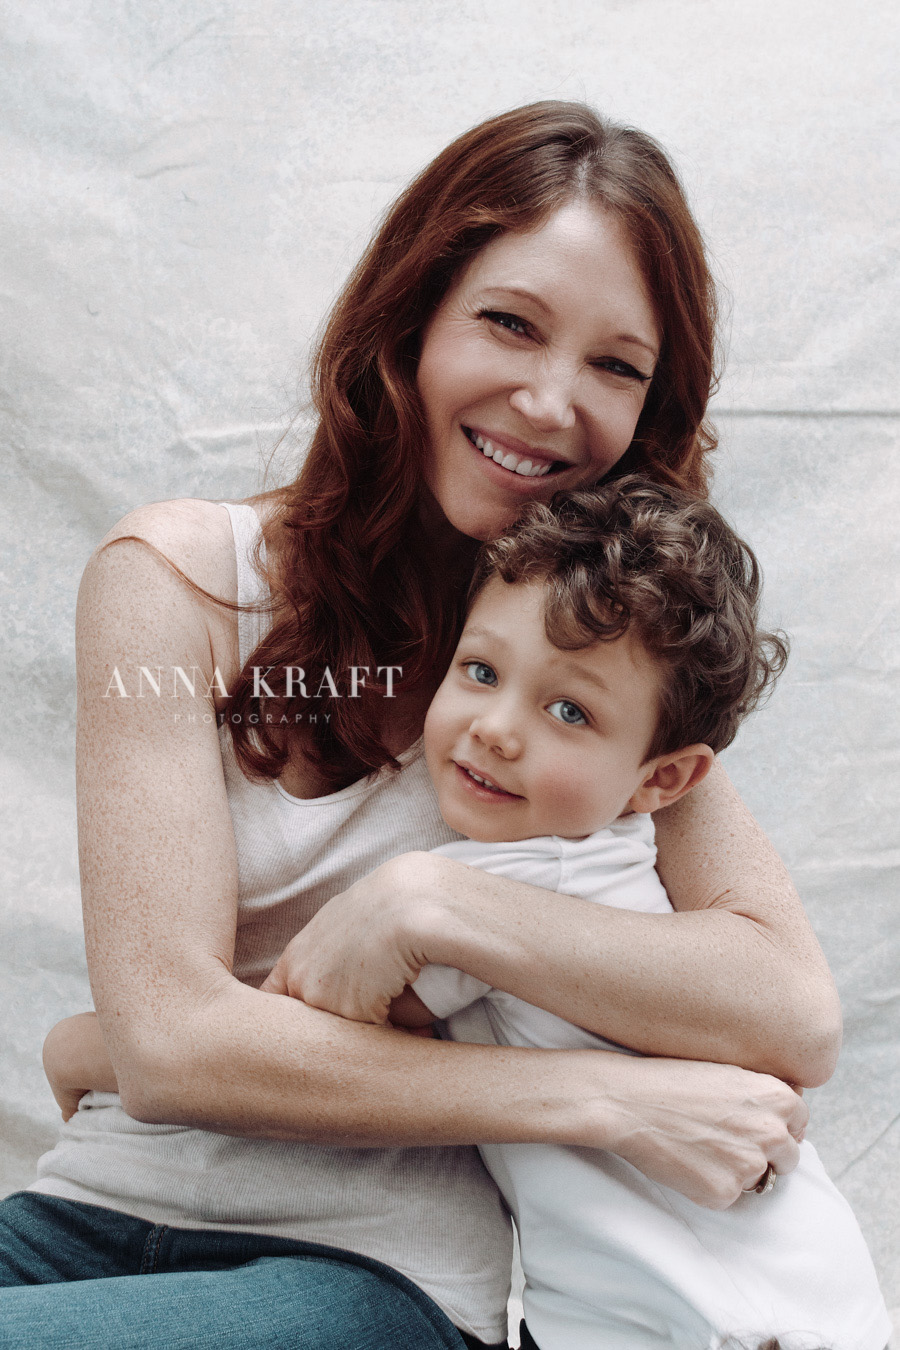 anna_kraft_photography_georgetown_square_studio_family_portrait-13.jpg